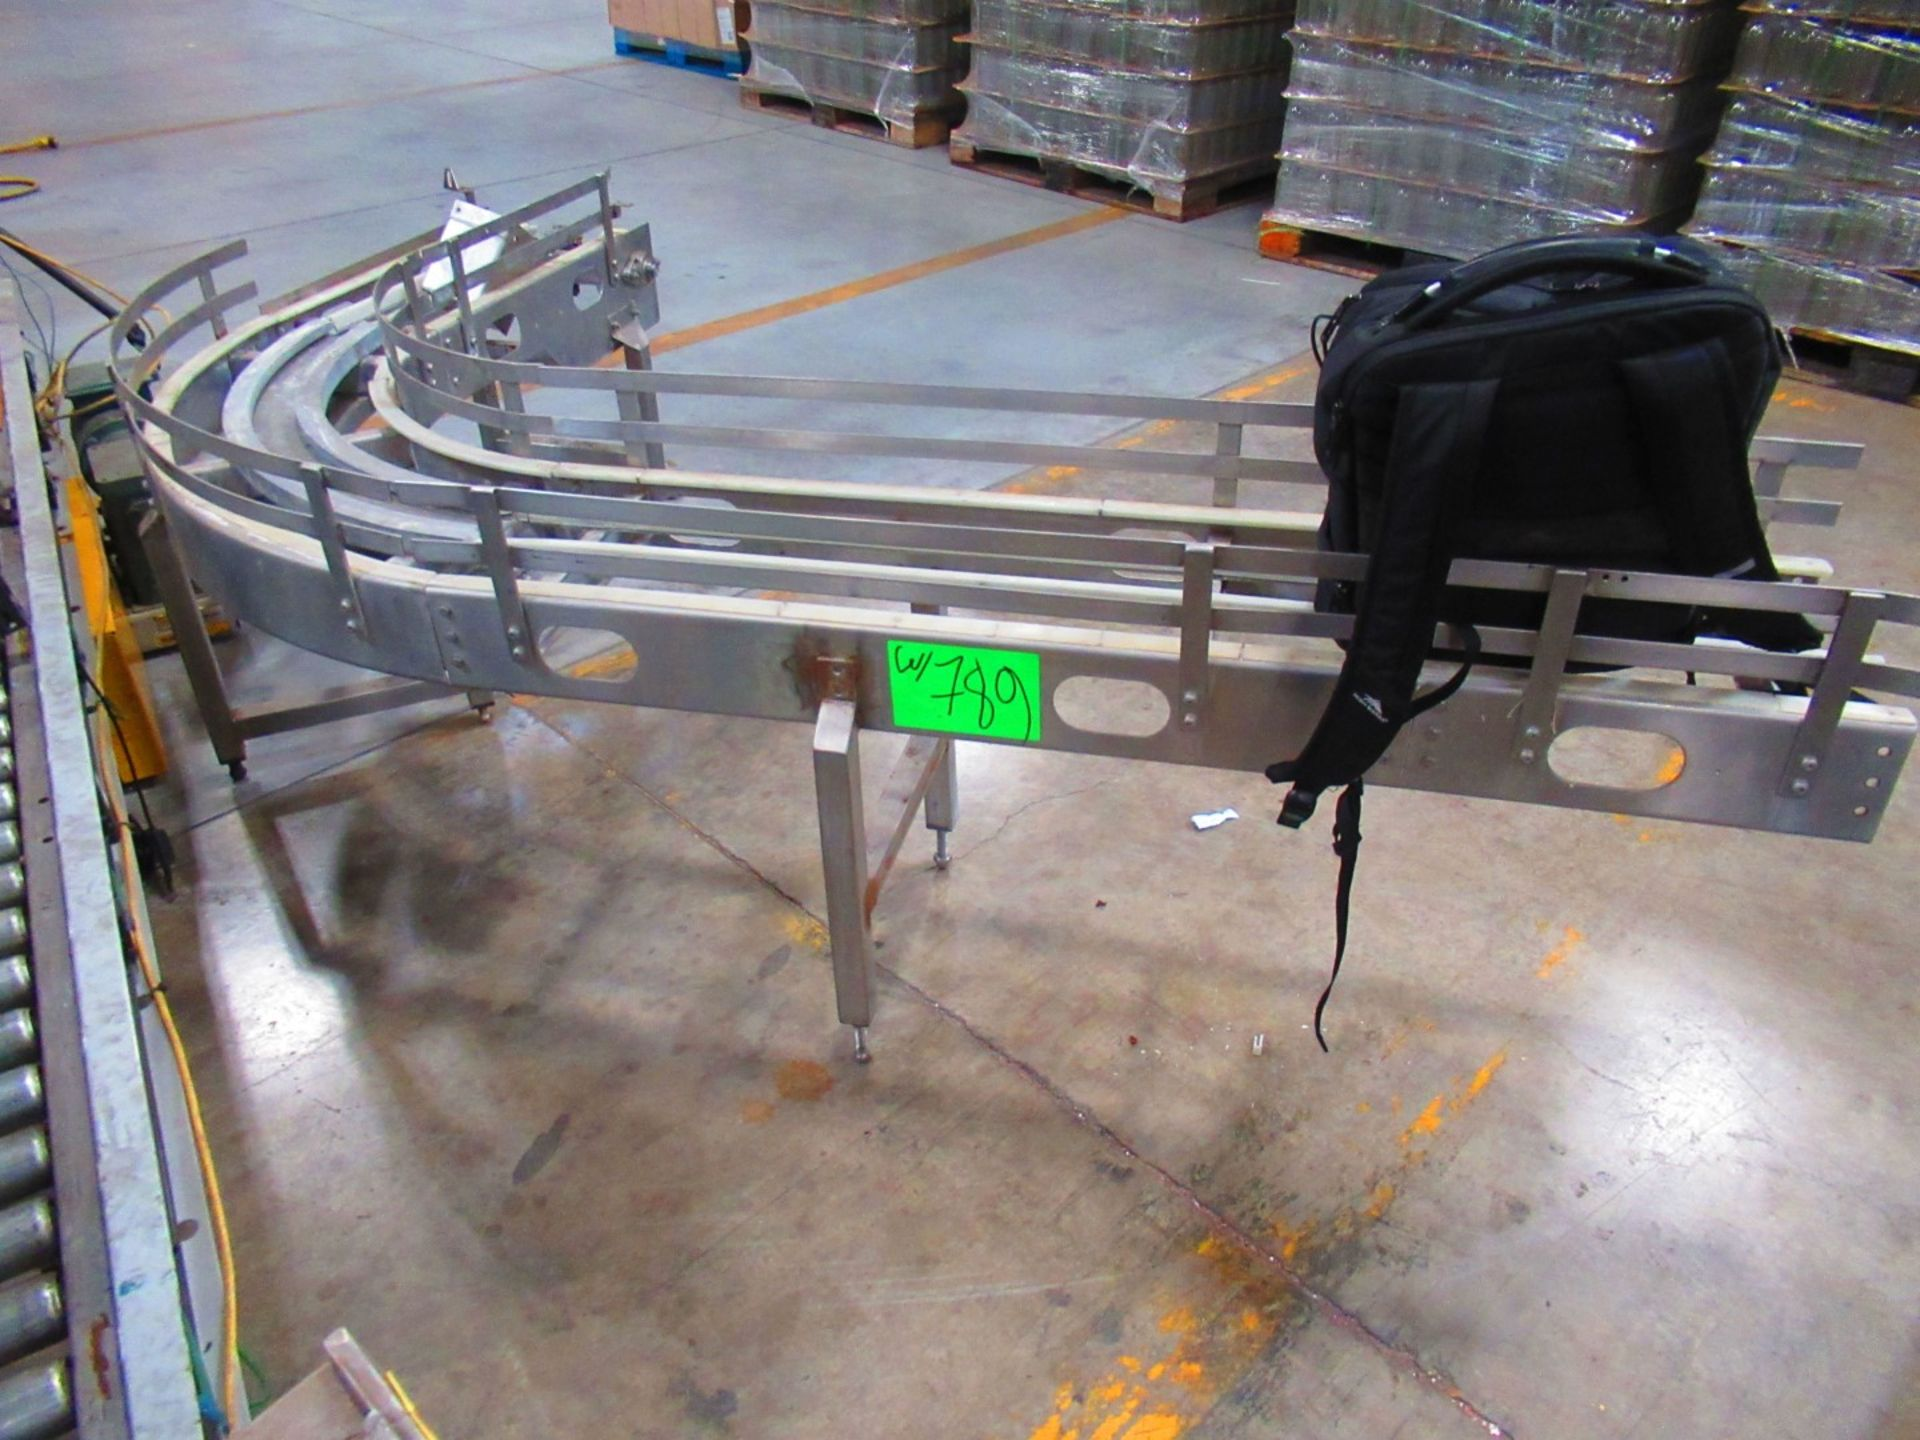 Conveyors - Image 4 of 7